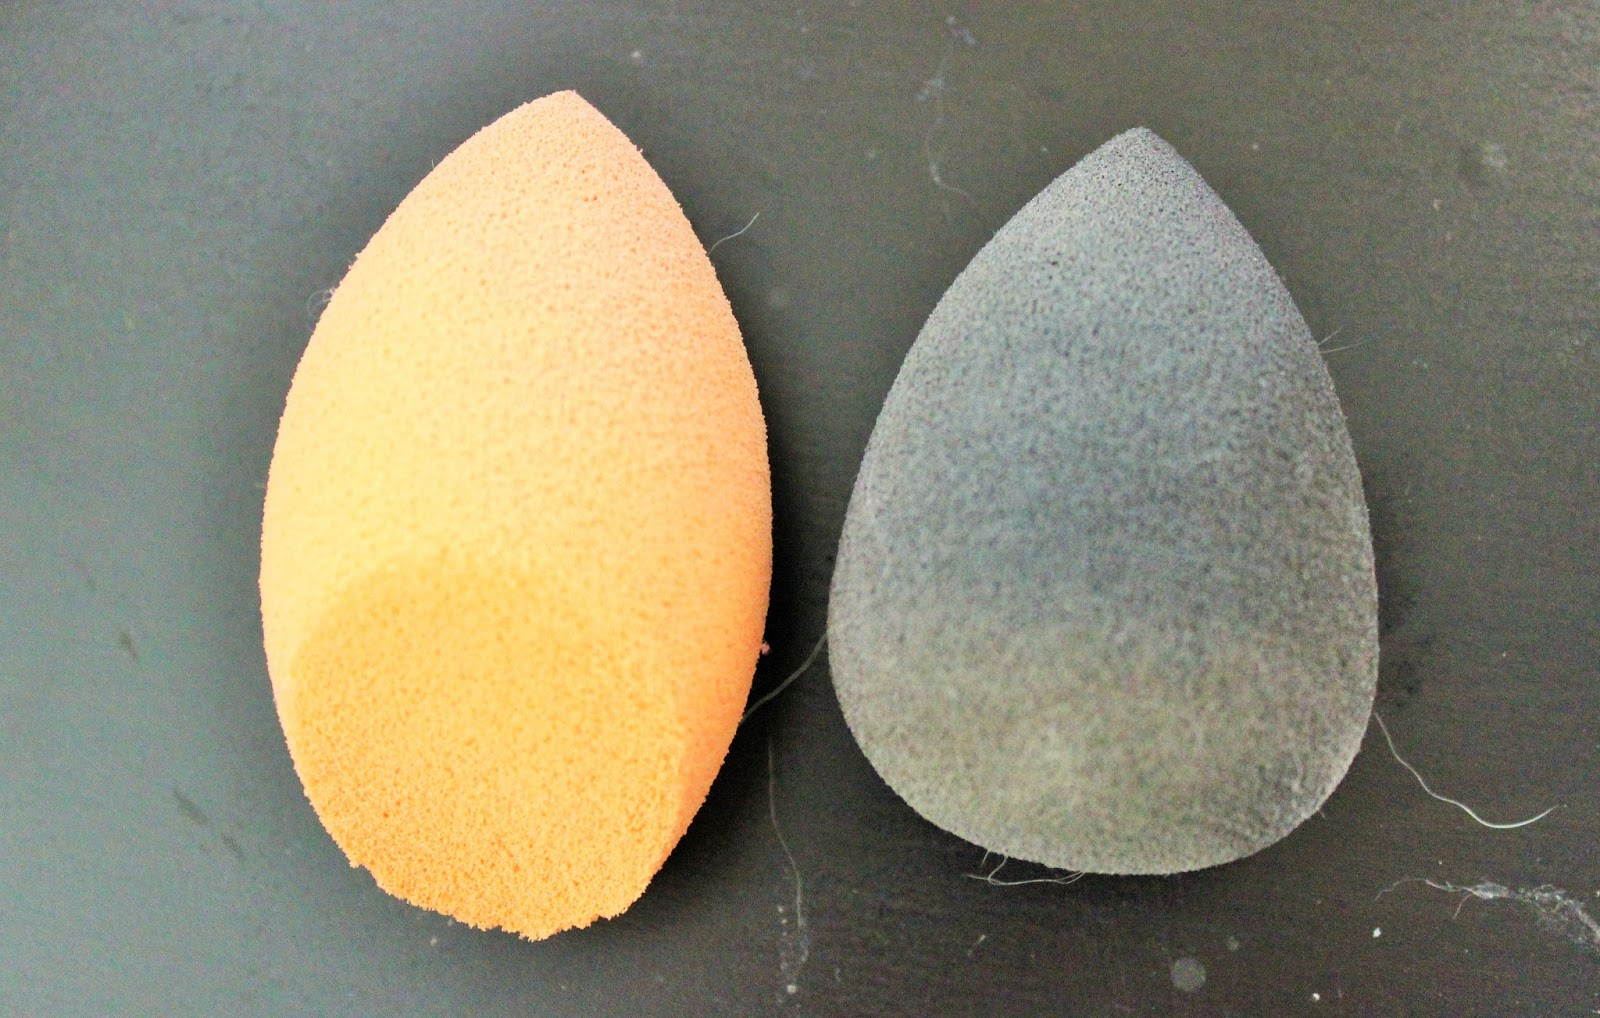 Real Techniques vs Beauty Blender